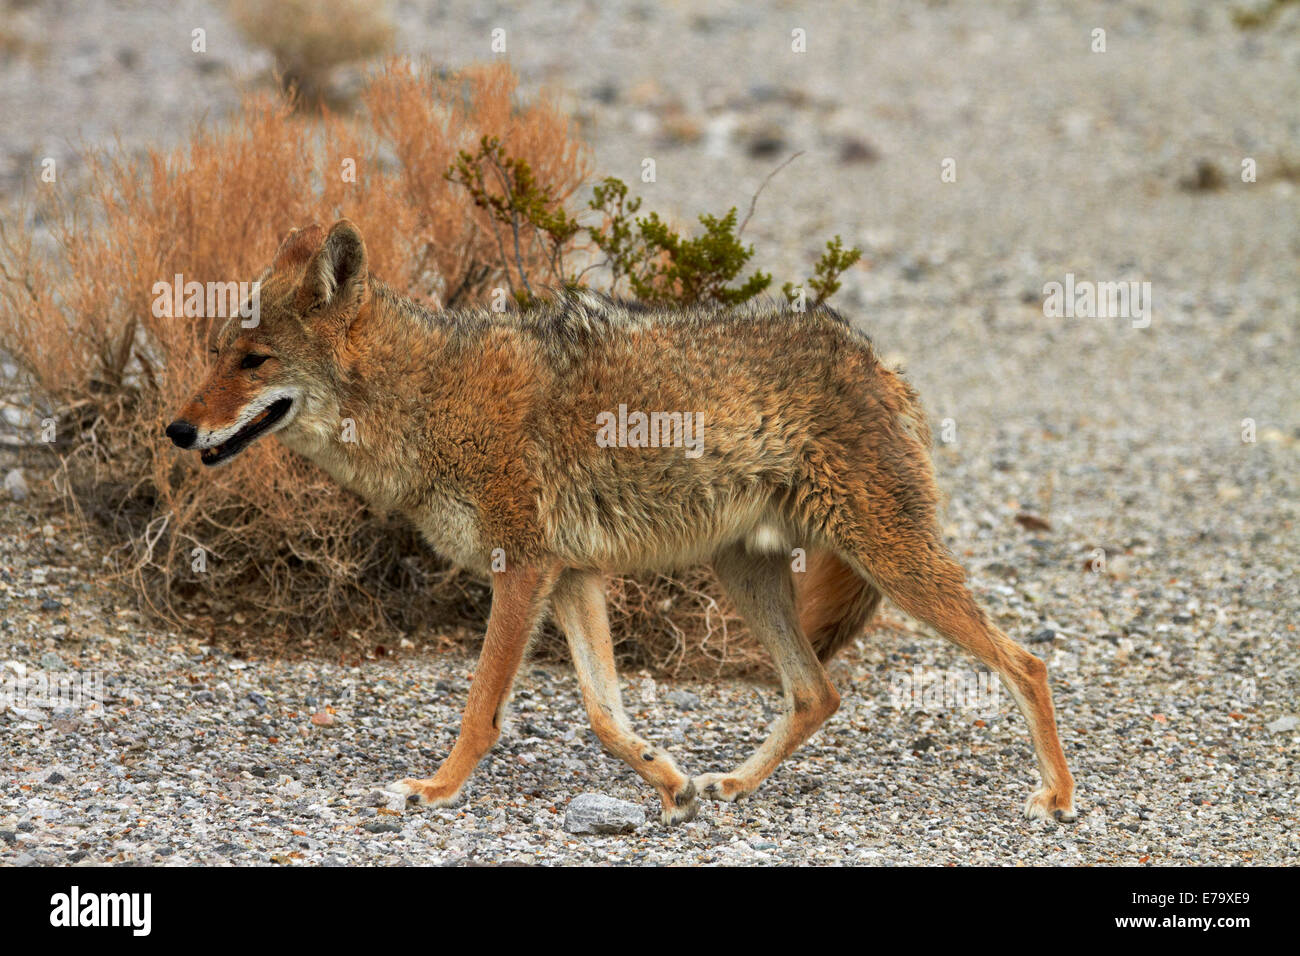 Coyote (Canis latrans), camouflaged against dry bush, Badwater Basin, Death Valley National Park, Mojave Desert, - Stock Image